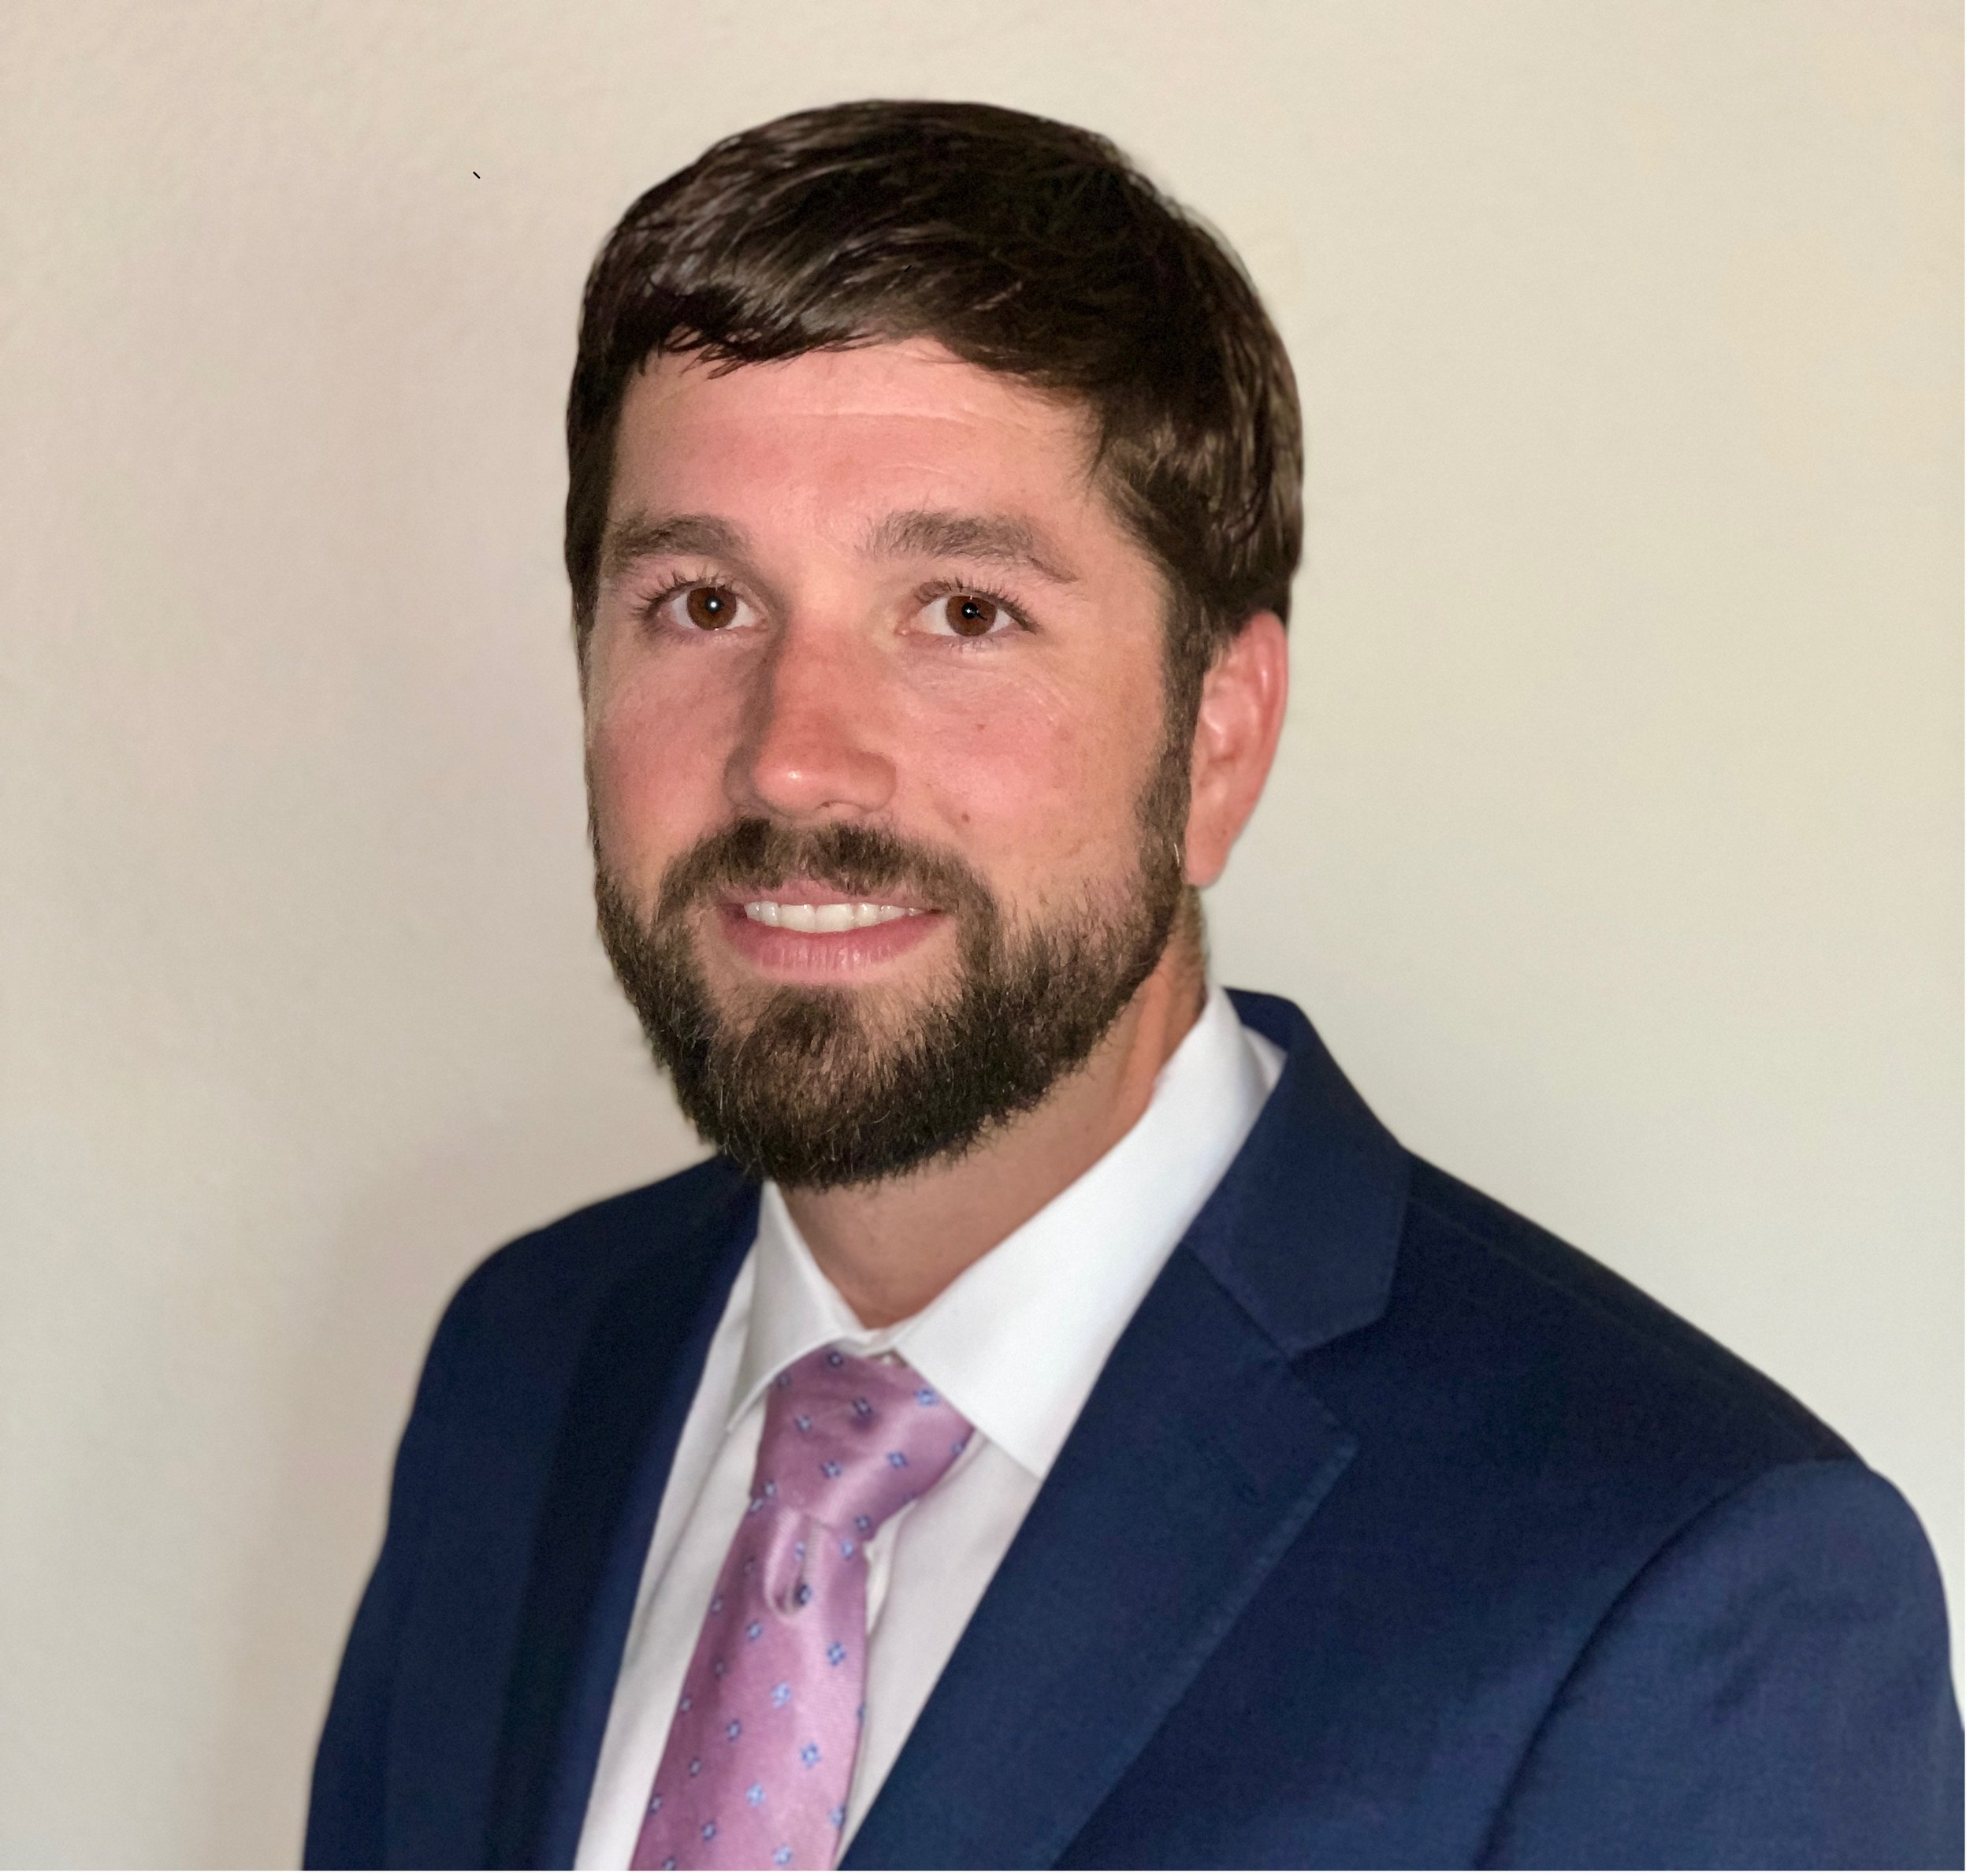 - Whit Smith, P.E. Whit joined Smith Structural Engineers in 2005 upon receiving his Bachelors Degree in Civil Engineering from Texas Tech University. He serves as the general and operations manager for the firm.